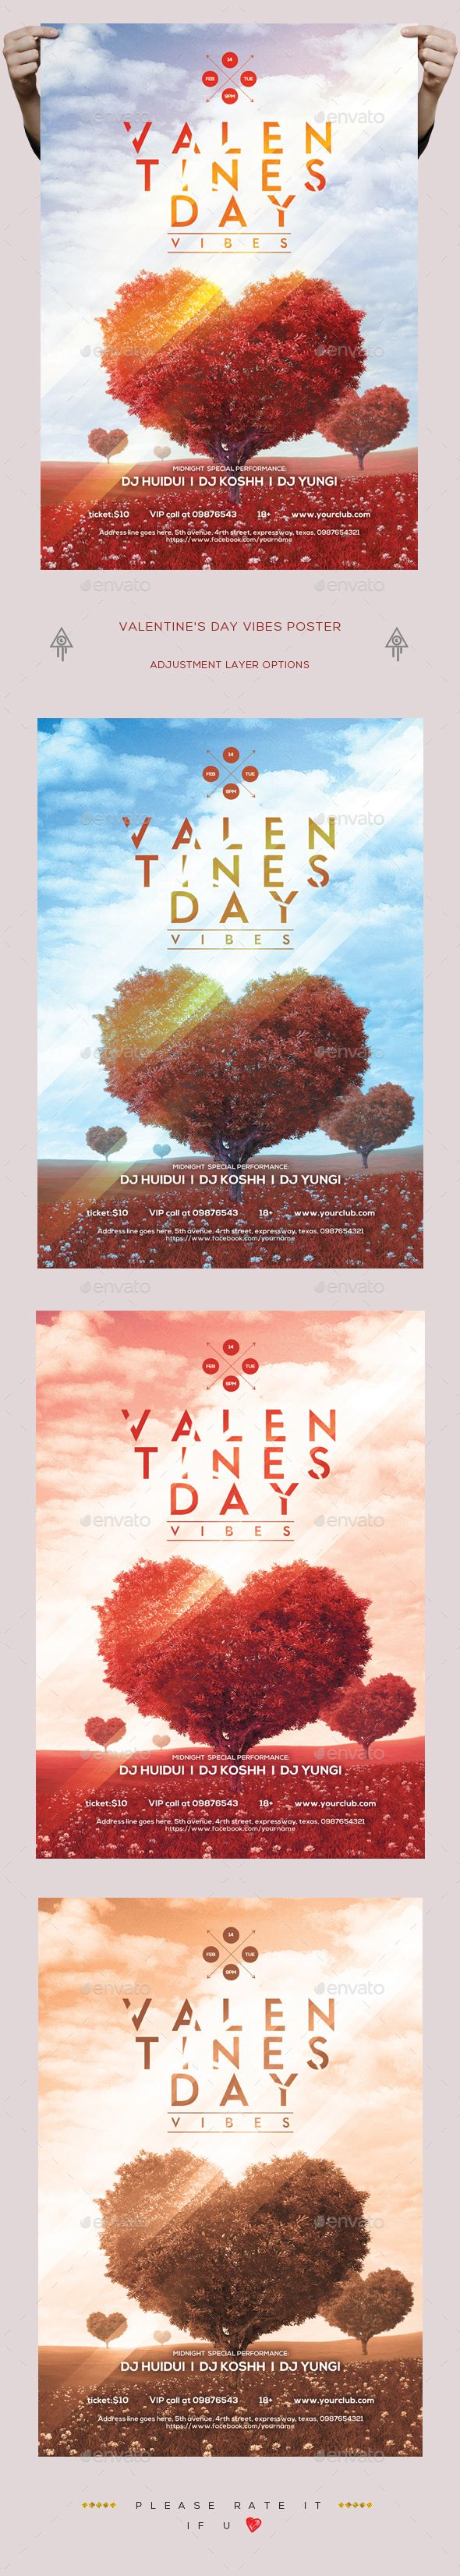 Valentines Day Party Poster / Flyer Template PSD